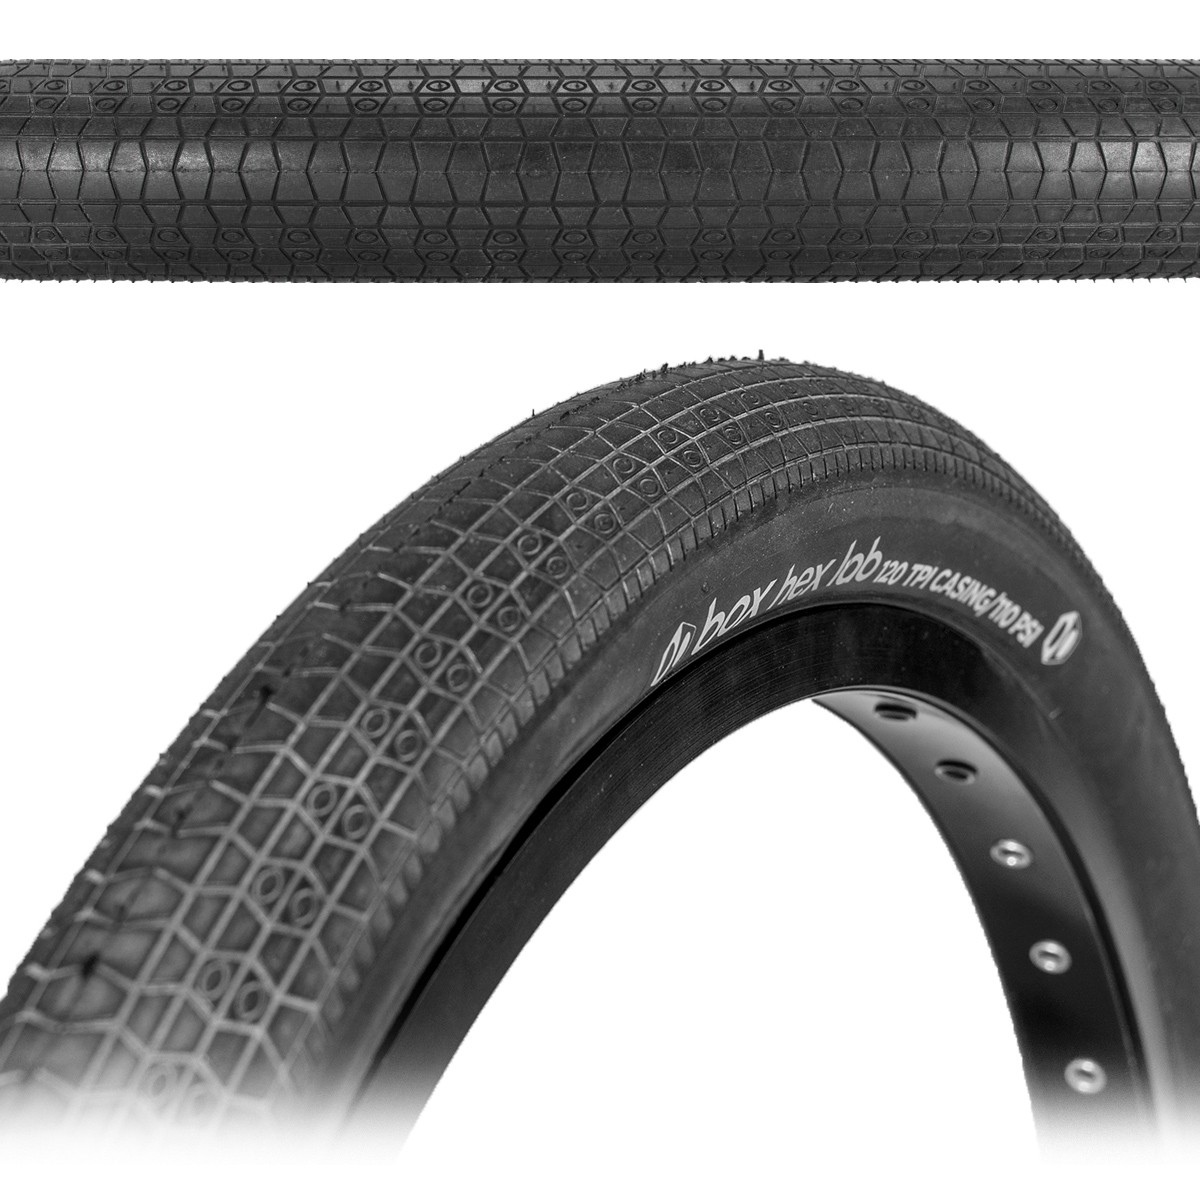 BOX HEX LAB RACE TIRES - 120 TPI - FOLDING BEAD